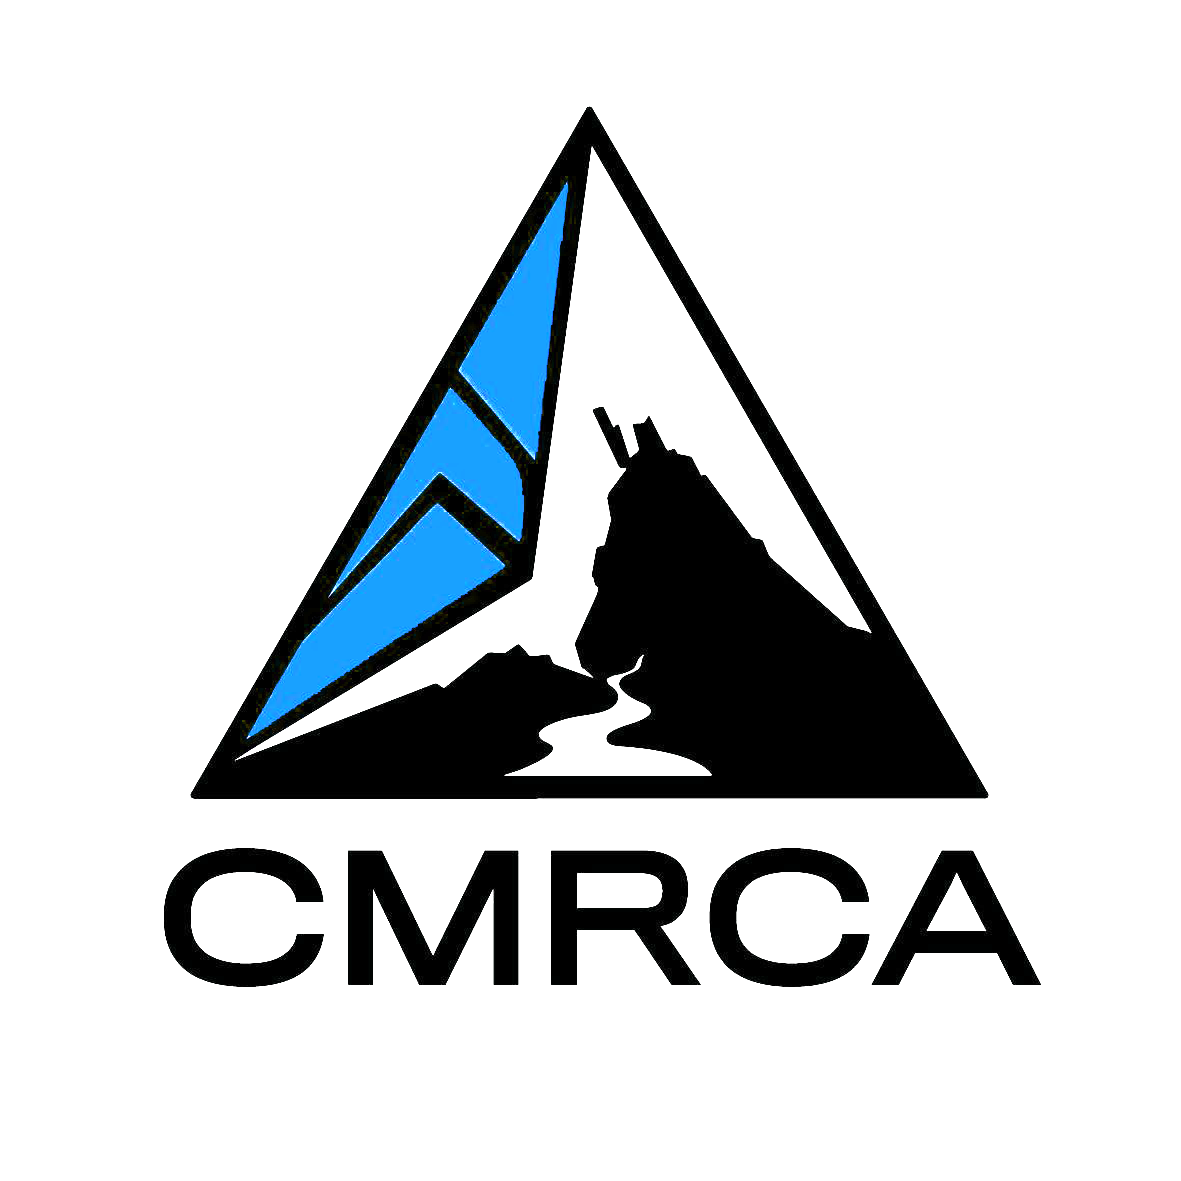 CMRCA